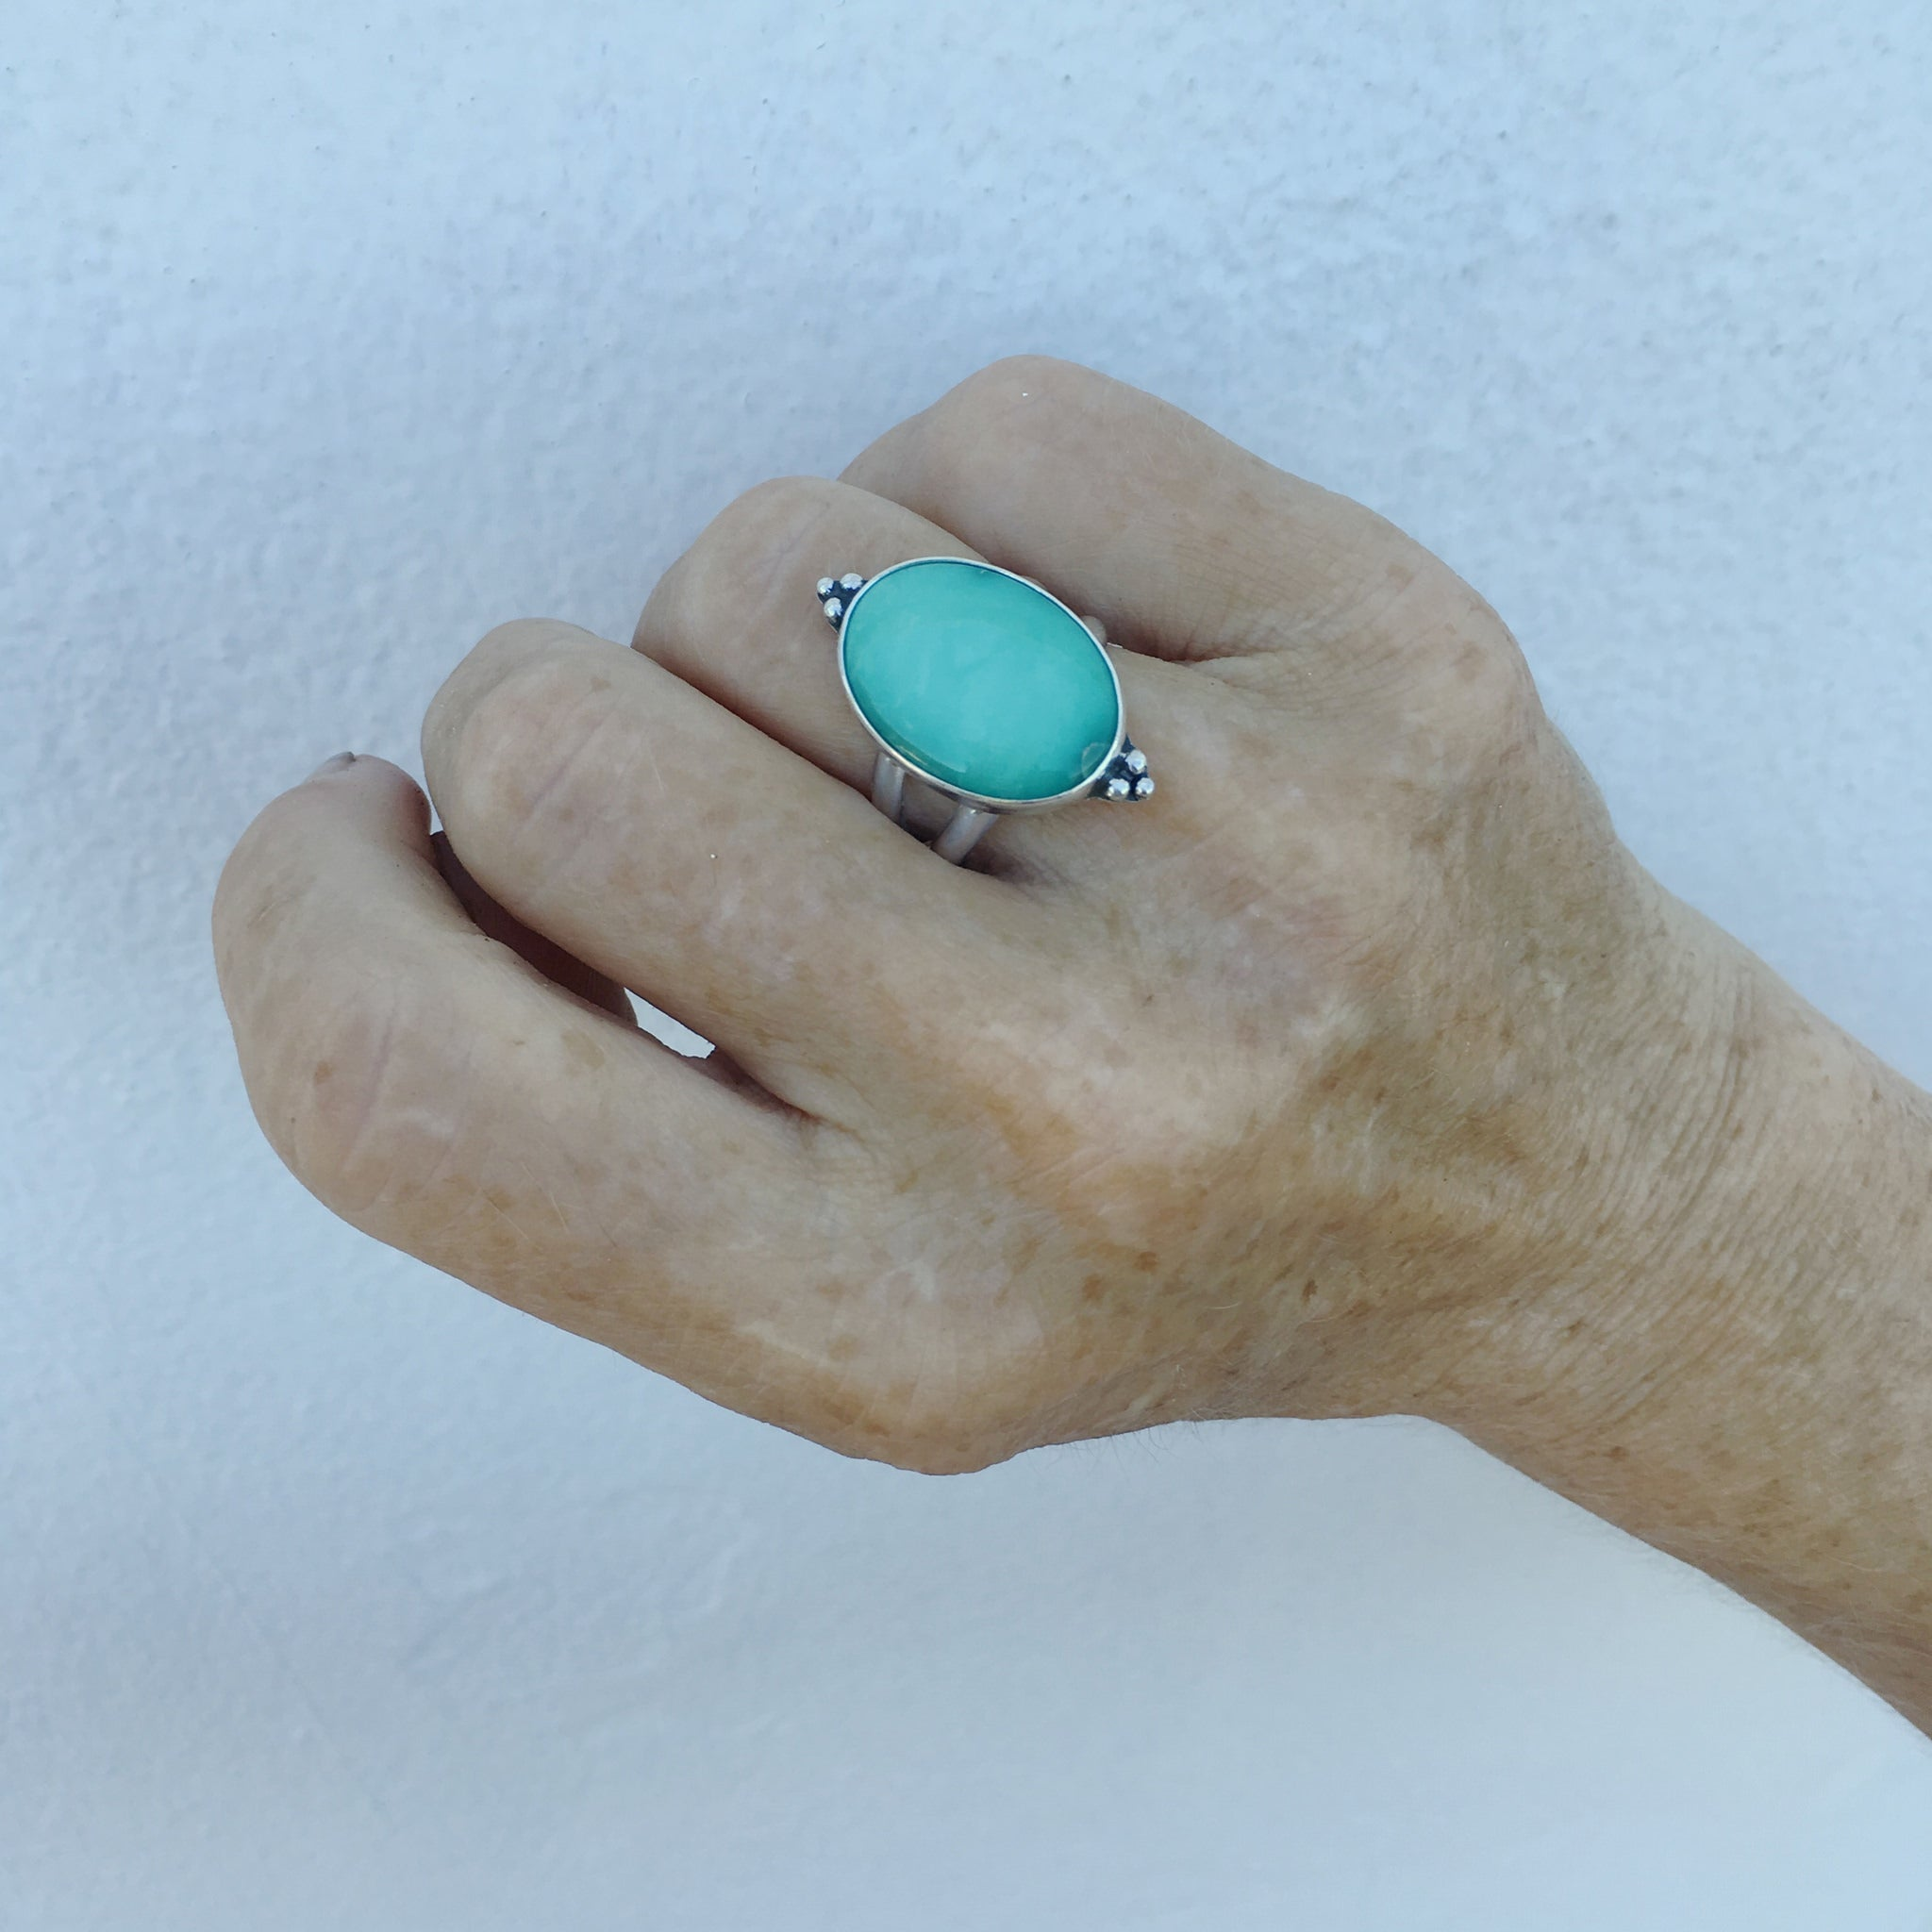 Handcrafted-Australian-Variscite-Ring-Shown-on-Hand